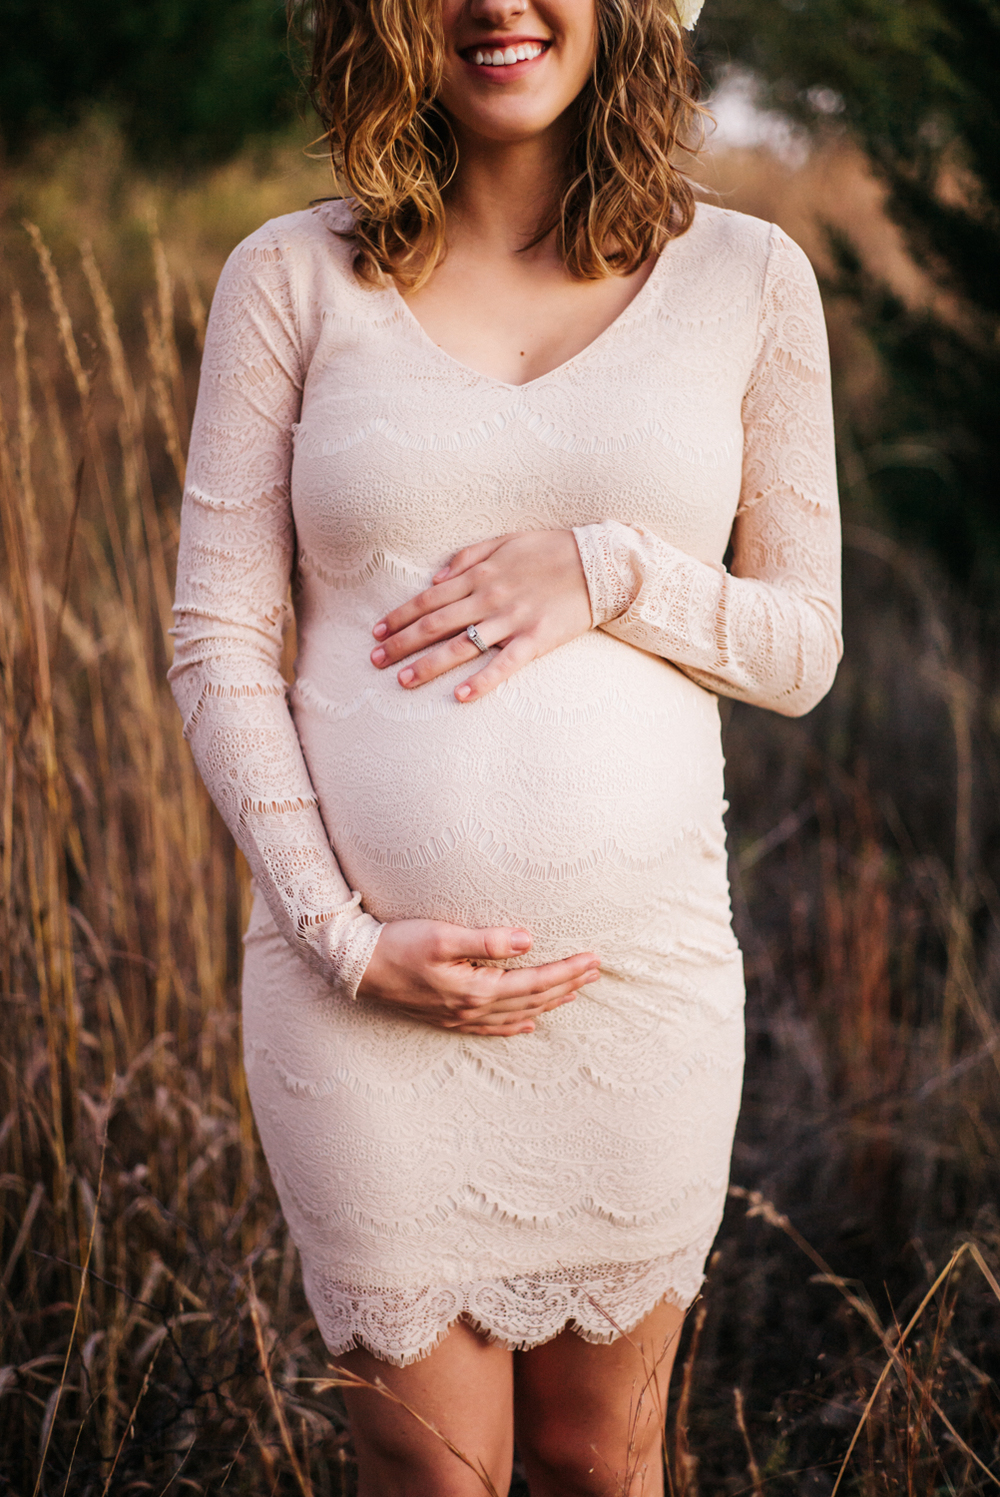 Wichita, Kansas Maternity Photography-Neal Dieker-Wichita, Kansas Photographer-138.jpg